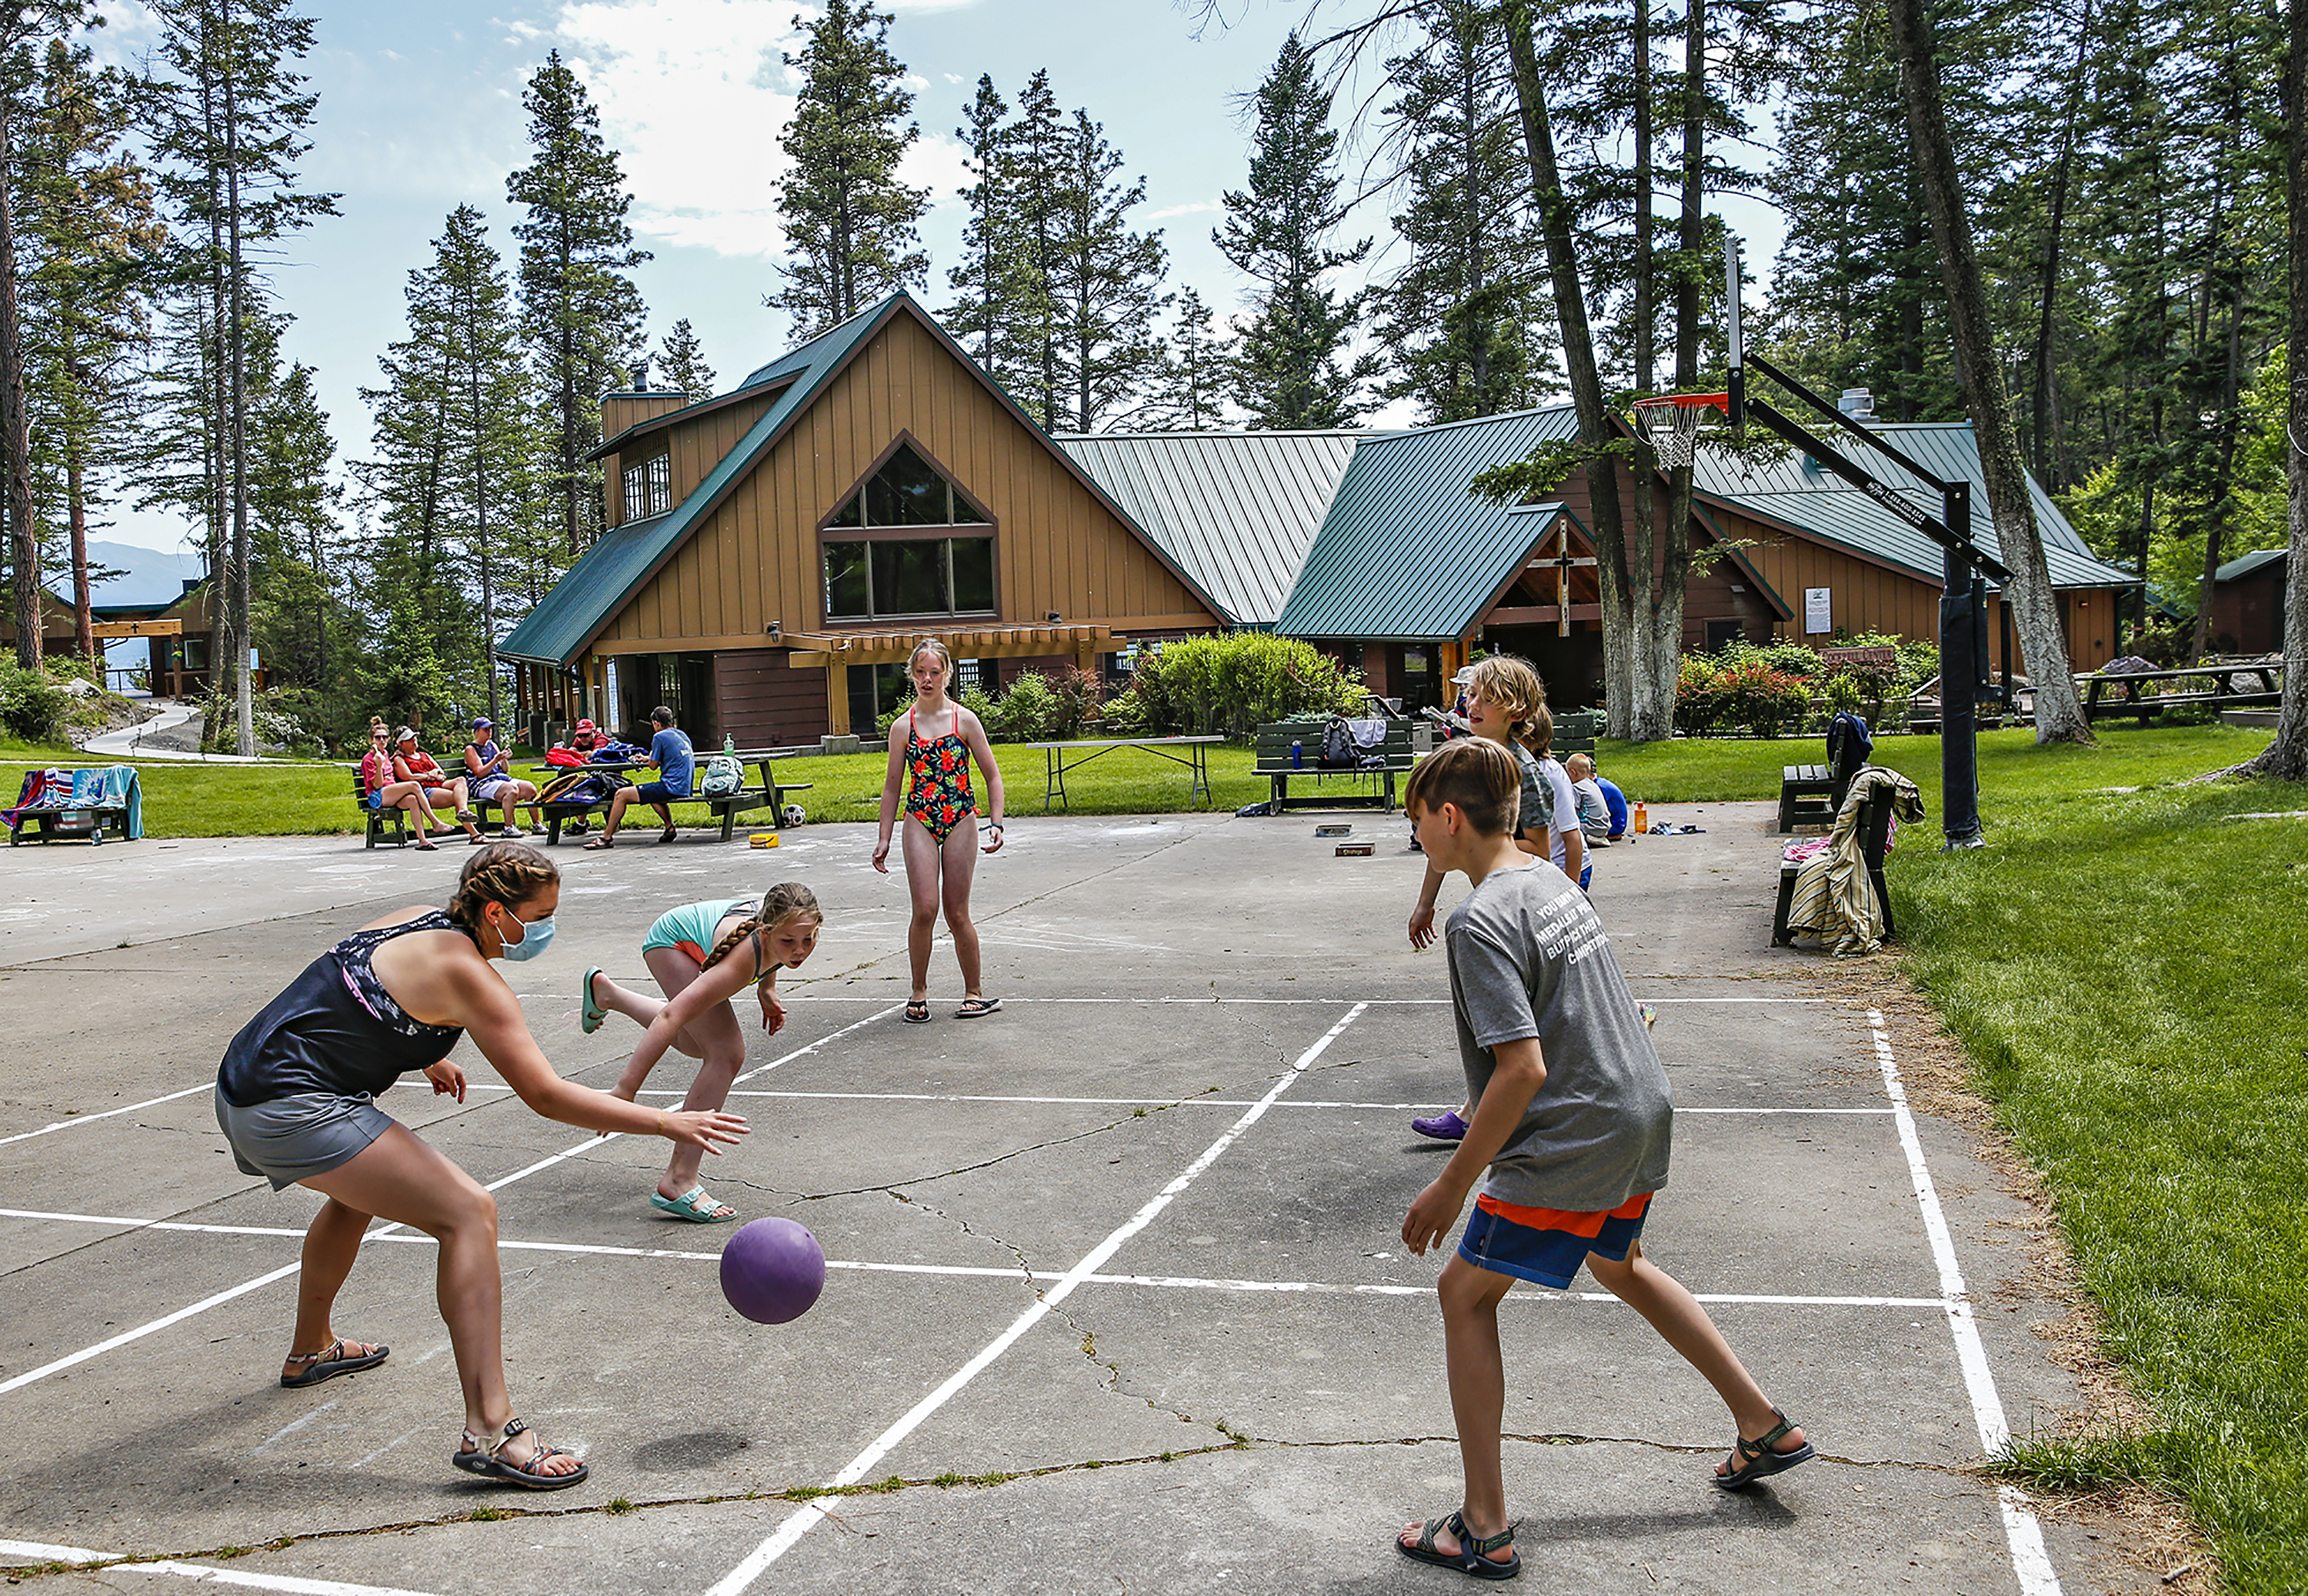 Children play on a court at Flathead Lutheran Bible Camp in Montana. Summer camp costs is an increasingly tough issue.